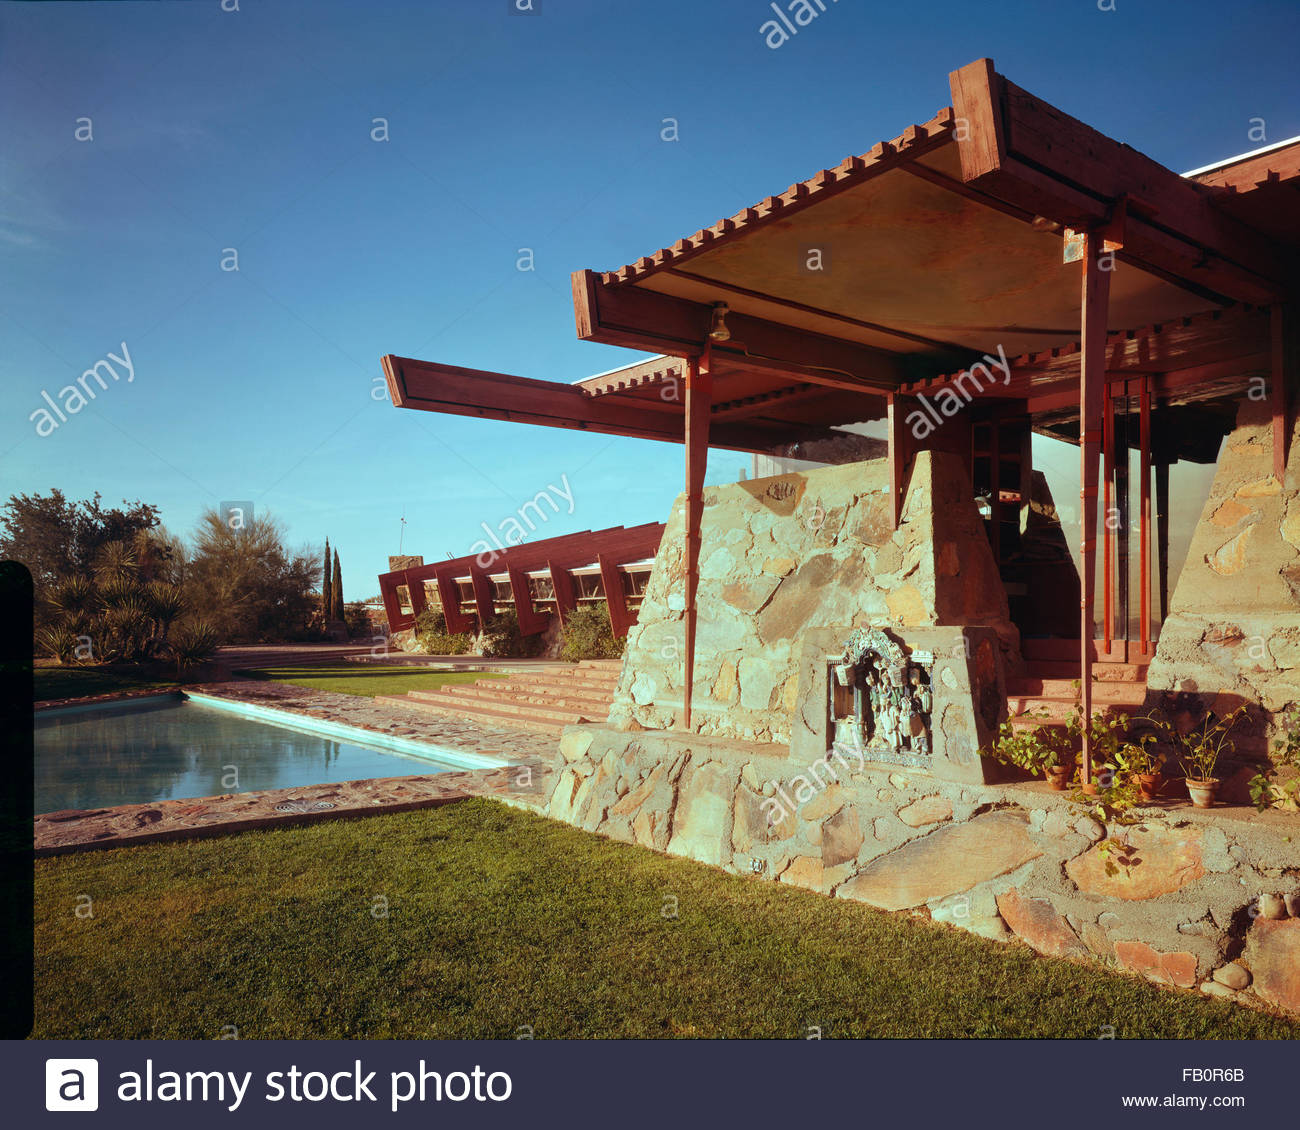 Taliesin West in Scottsdale (Ariz.), 1942 Feb.-1963. Exterior reflecting pool and awning. - Stock Image